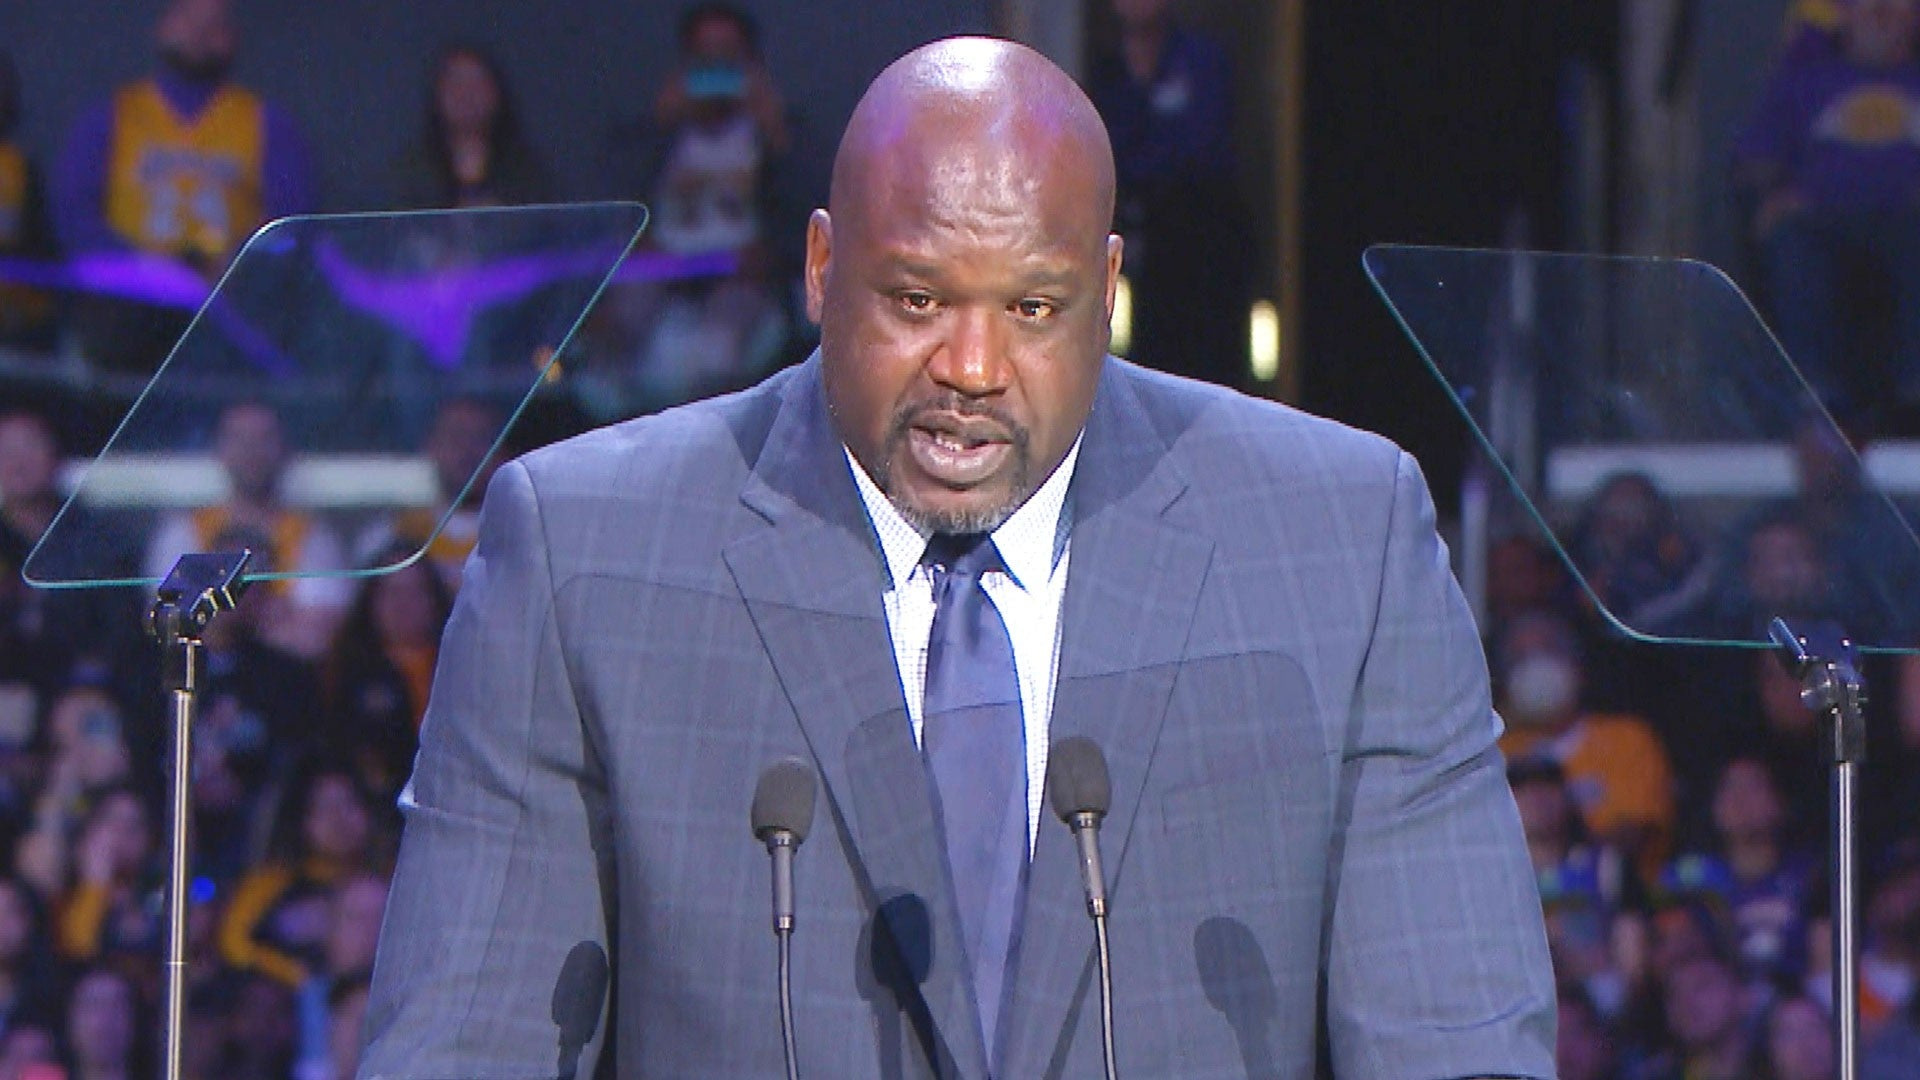 Shaquille O Neal Remembers Kobe Bryant In Touching Memorial Speech Entertainment Tonight